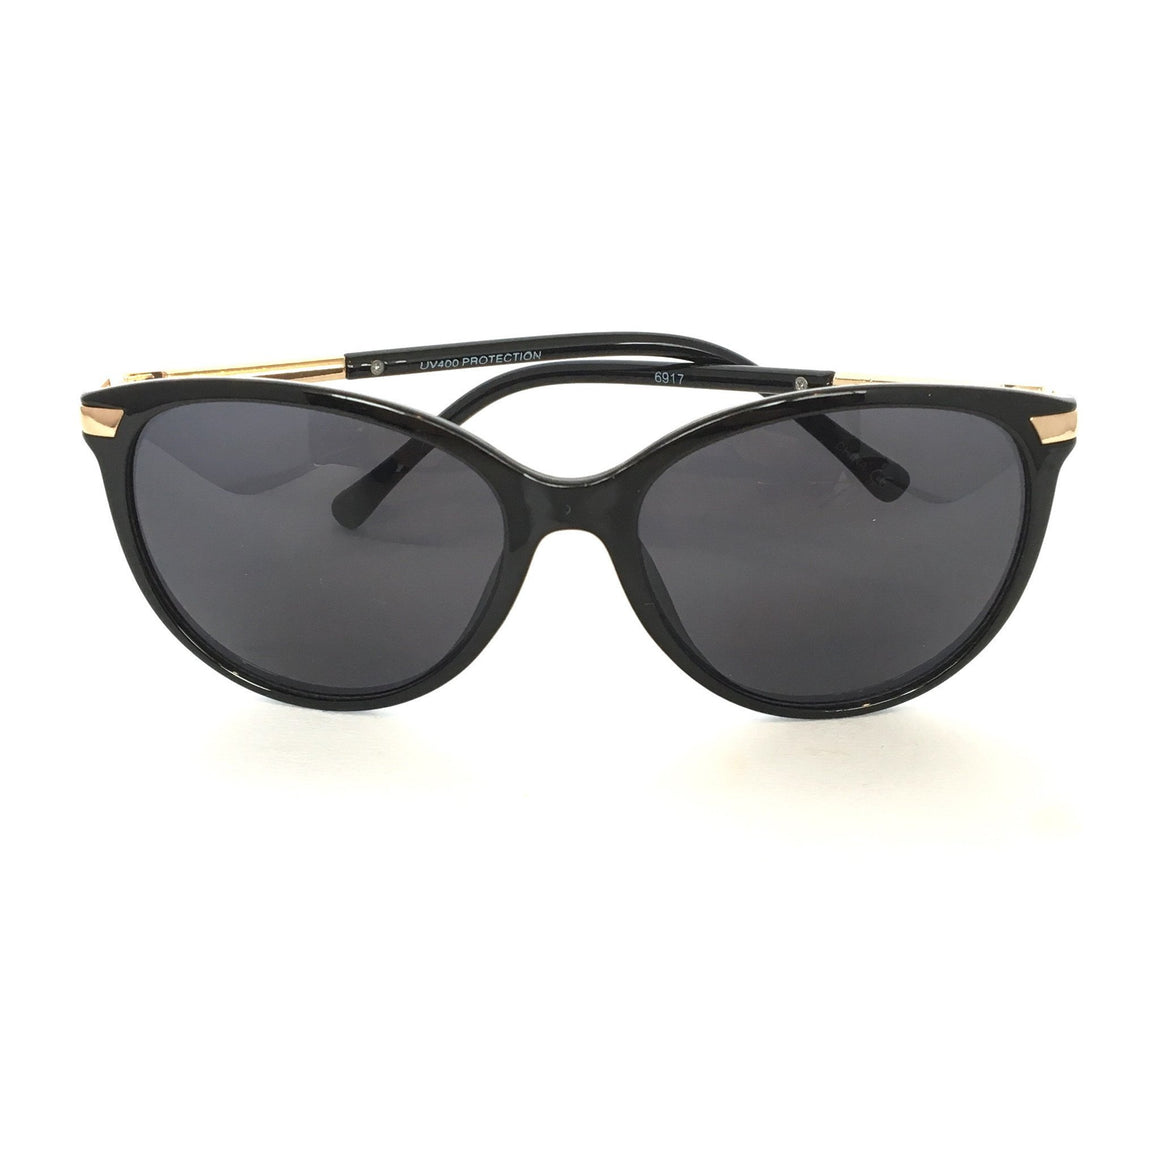 Suns Out Lense Out Sunglasses - Dainty Hooligan